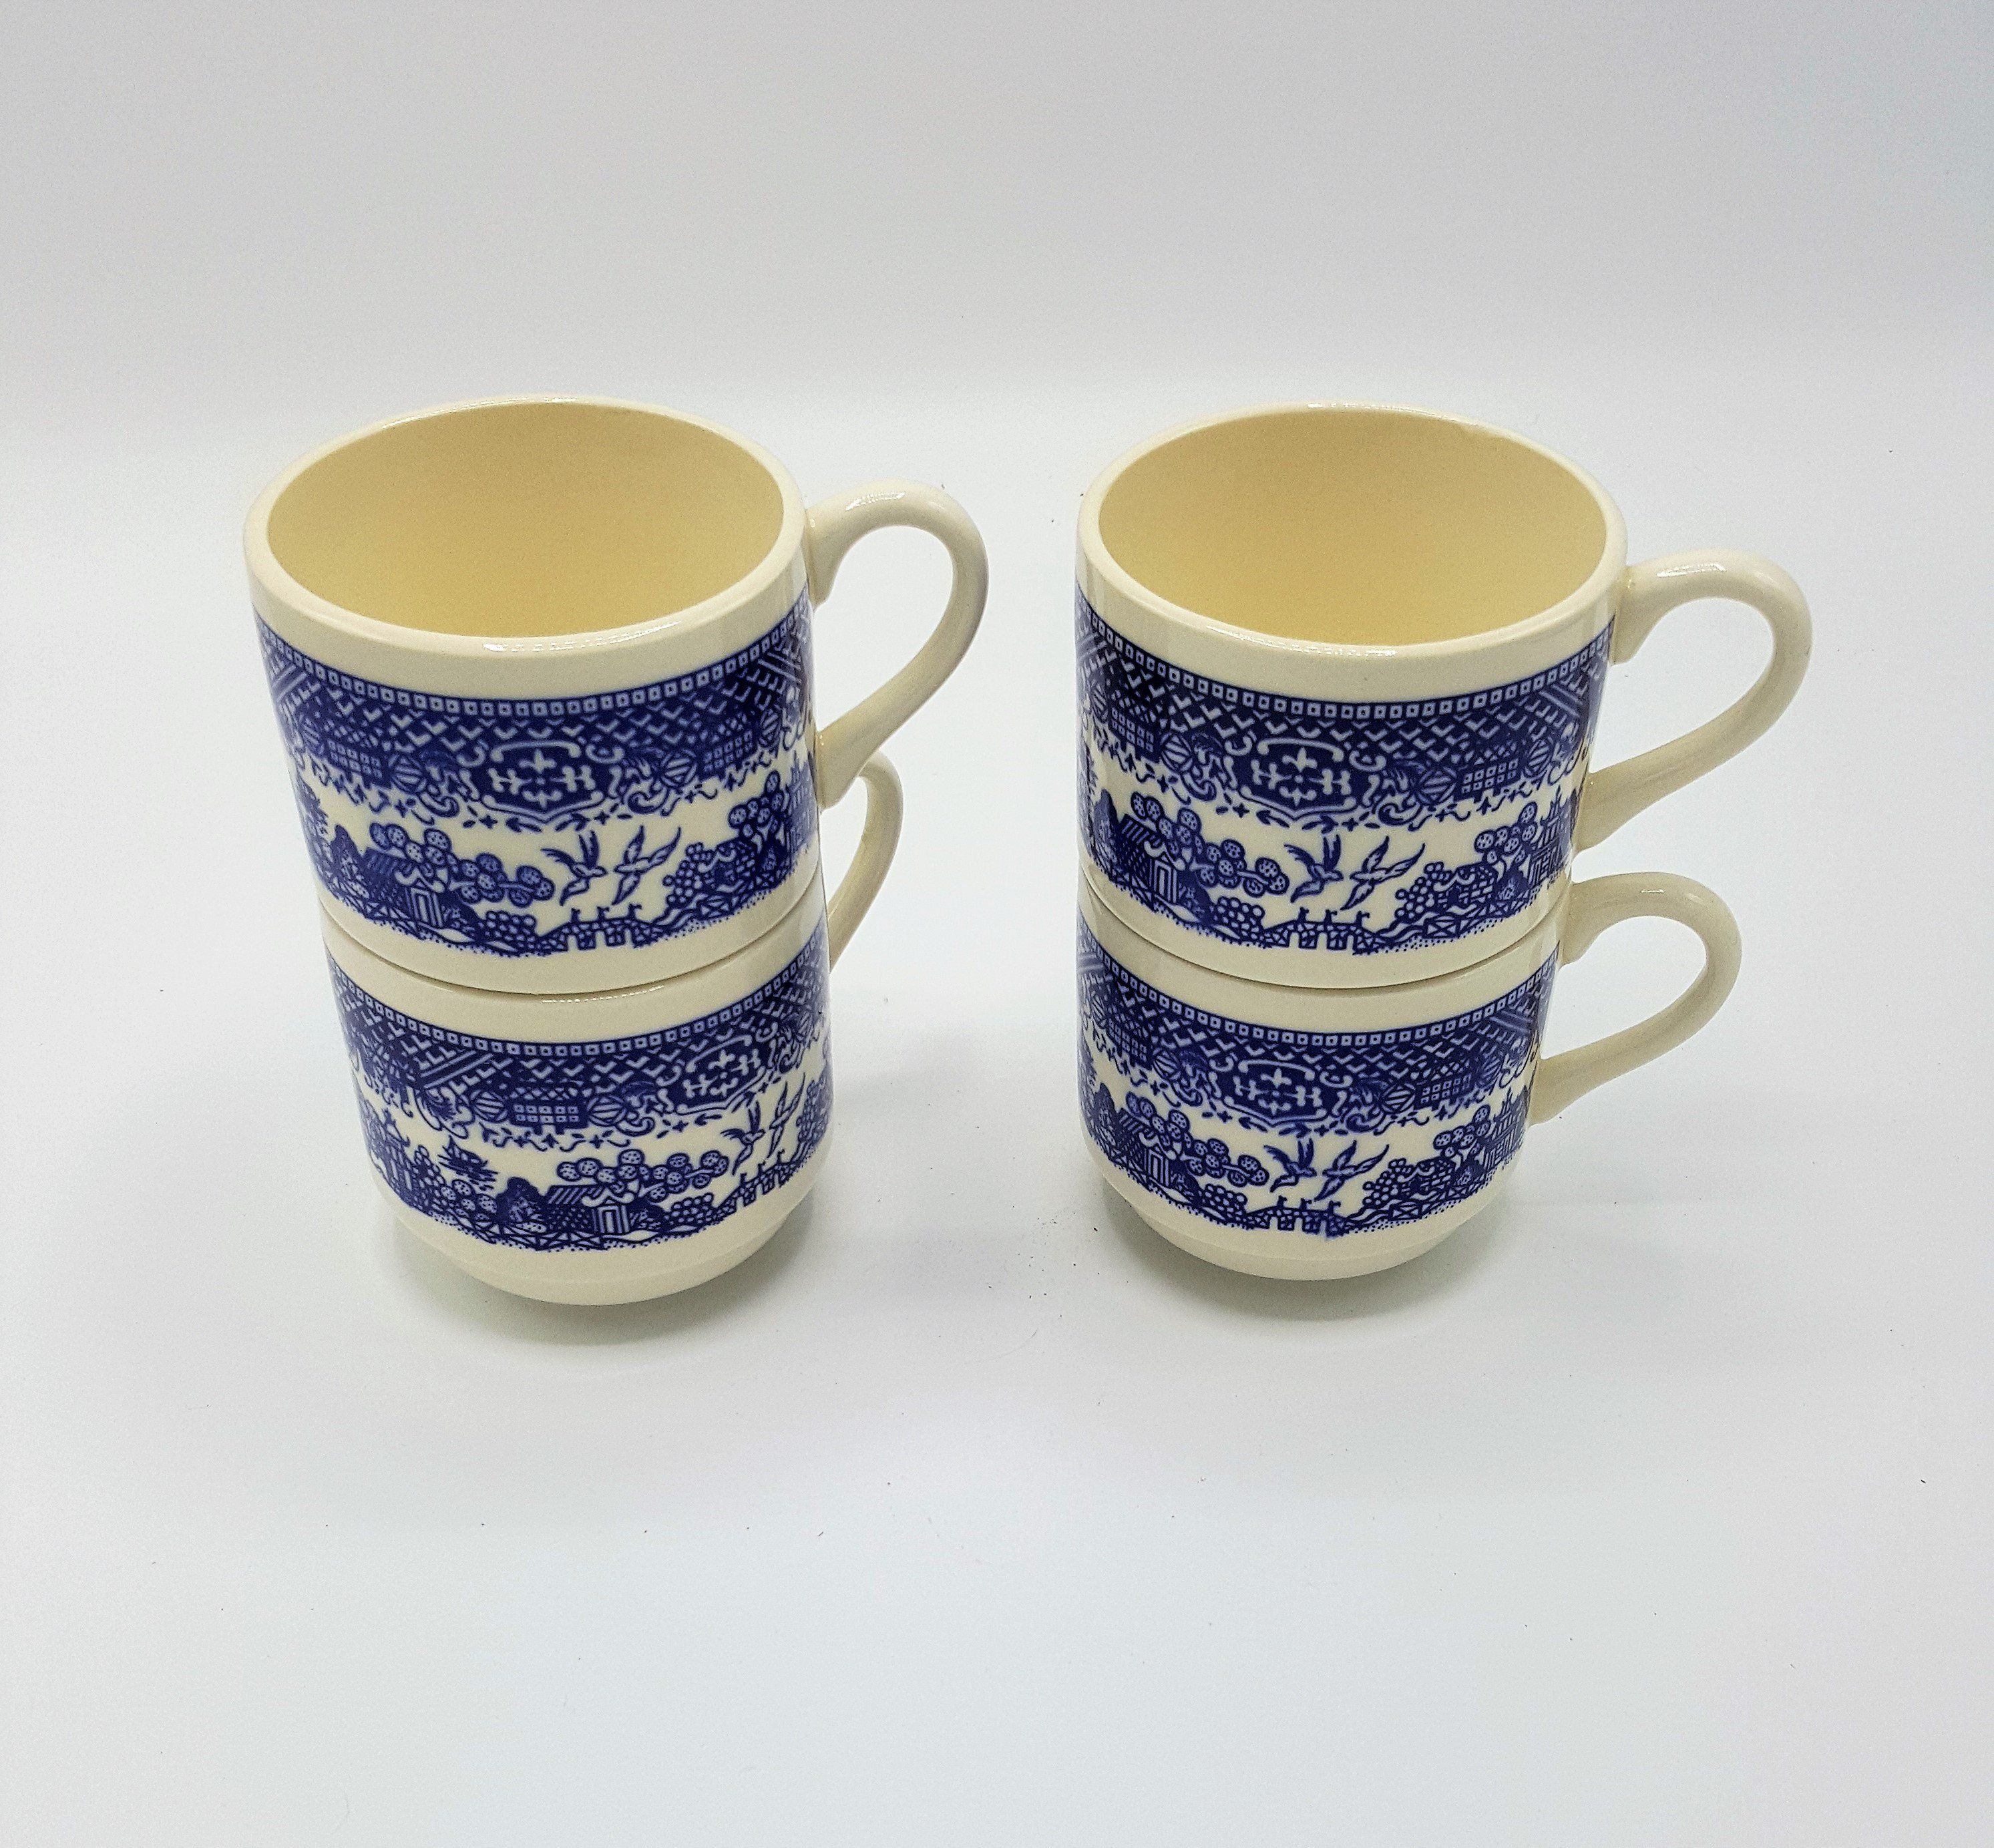 Vintage Blue Willow USA stacking coffee cups set of 4 Blue